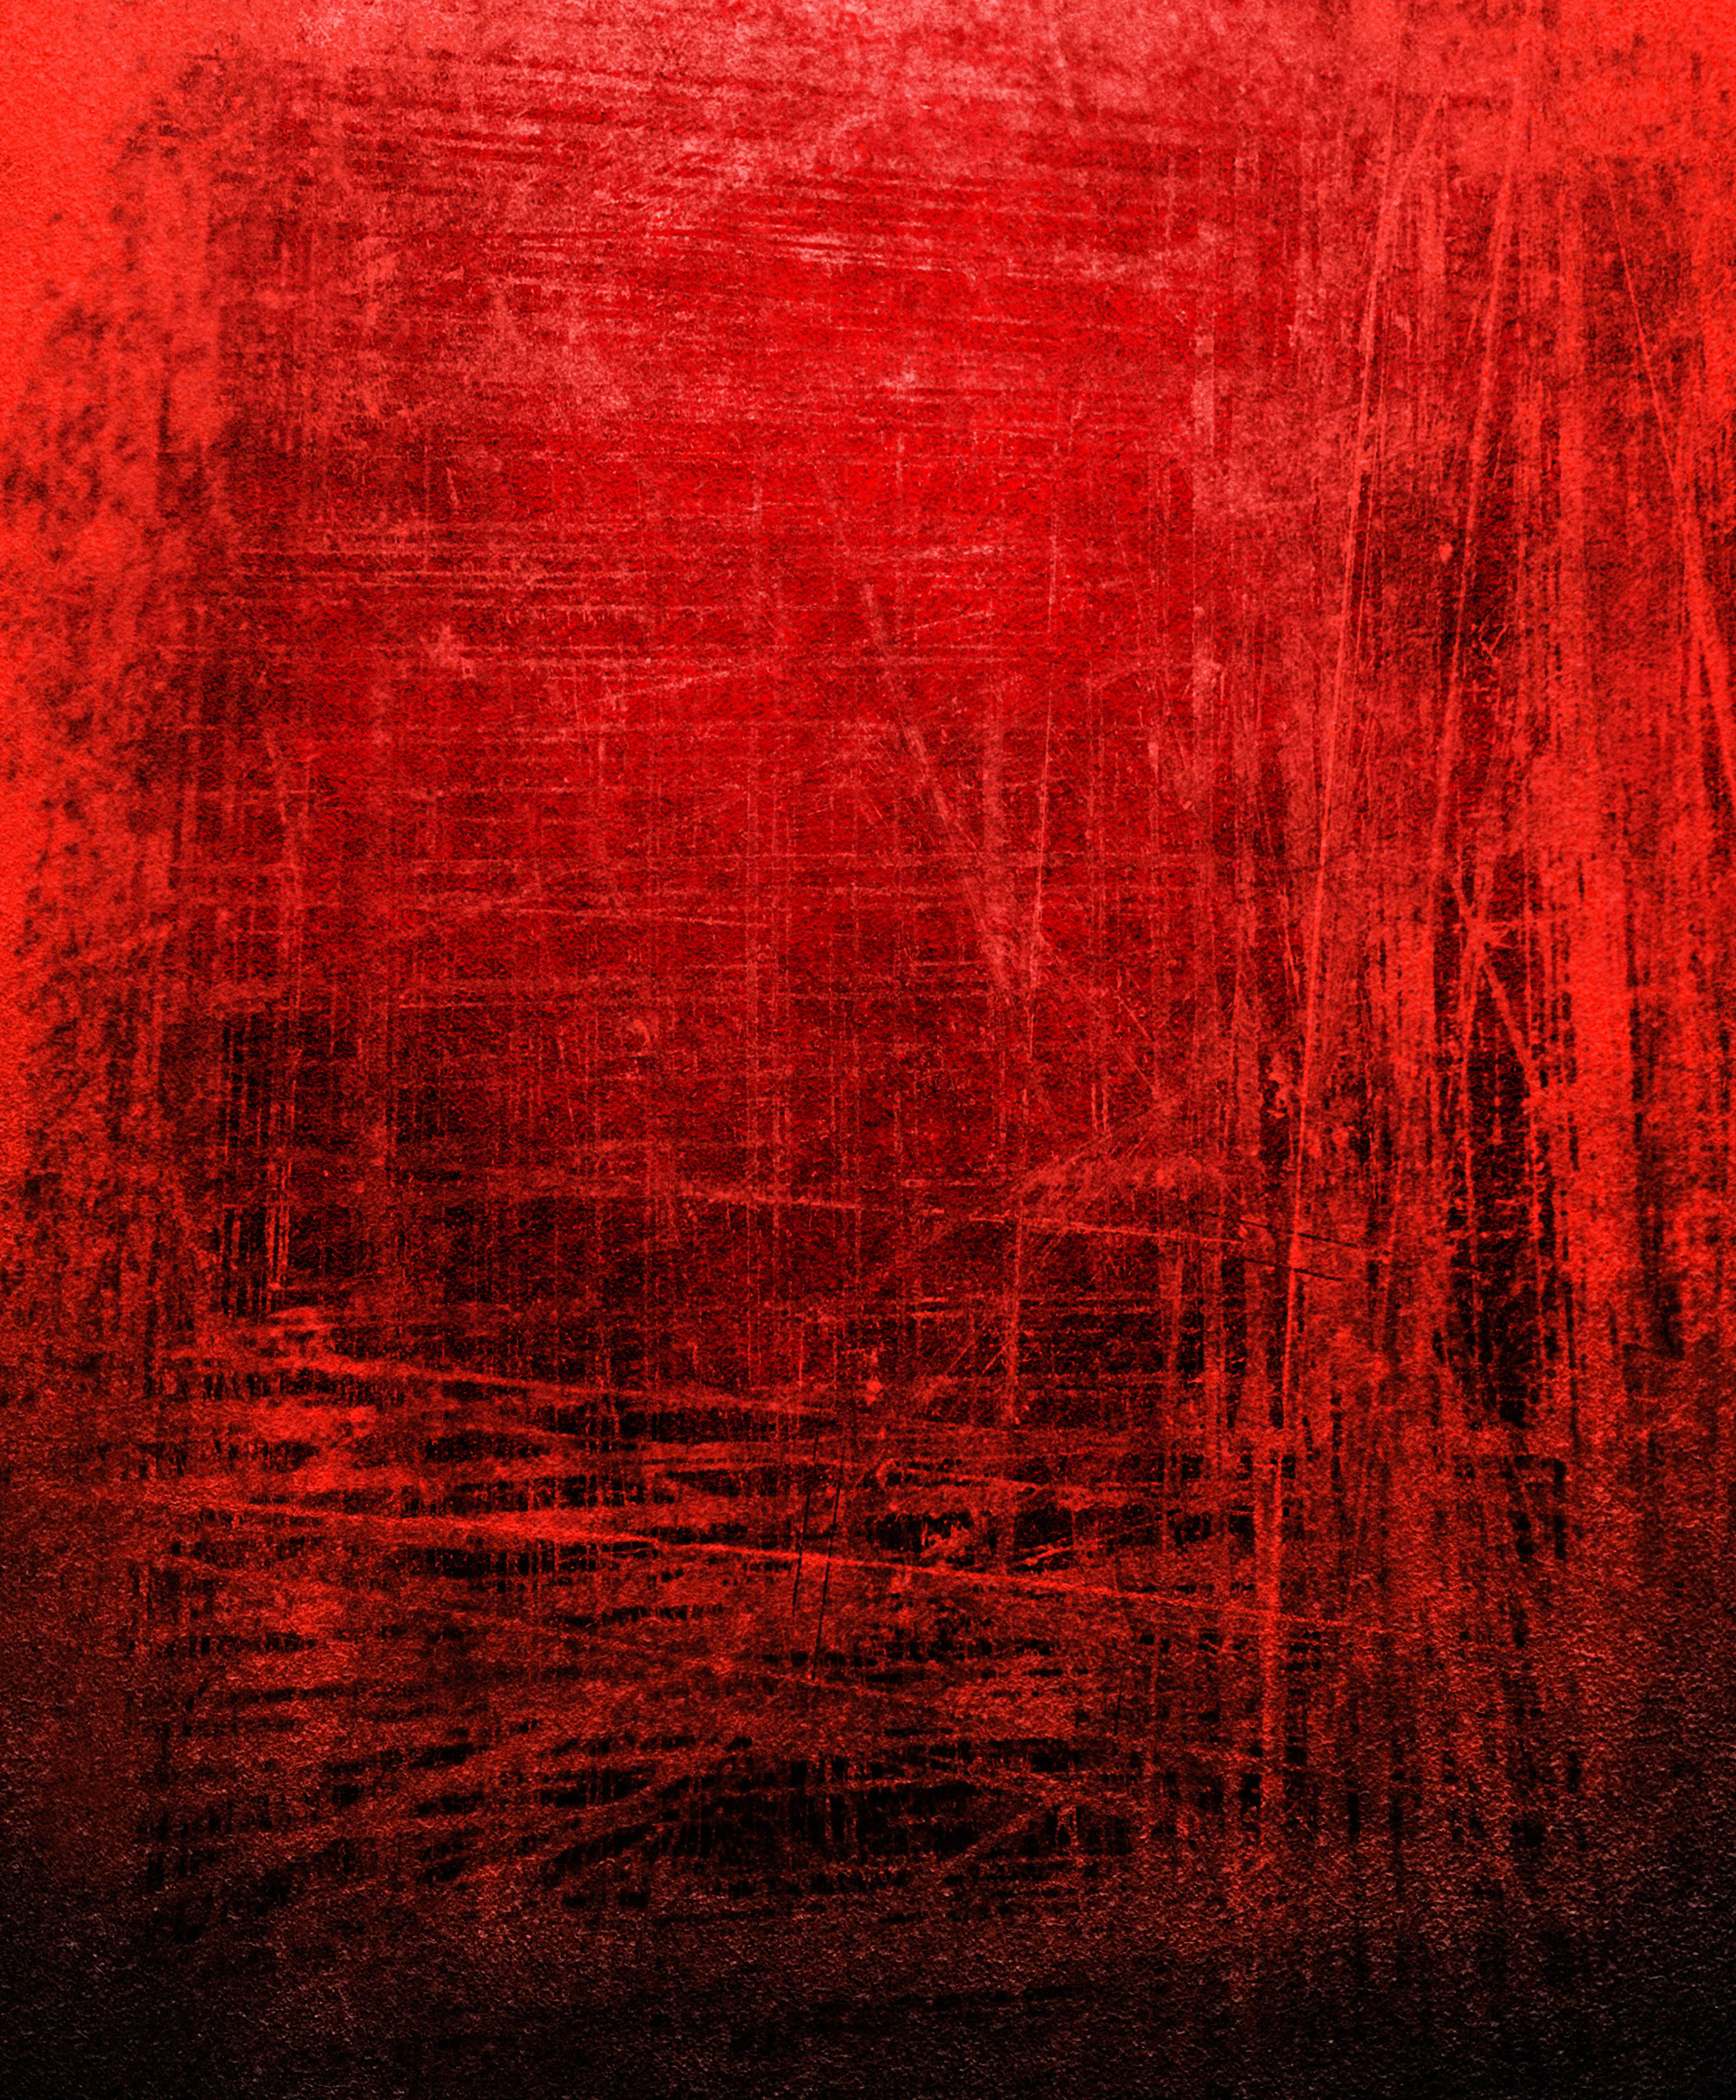 Red Texture Background - PowerPoint Backgrounds for Free PowerPoint  Templates